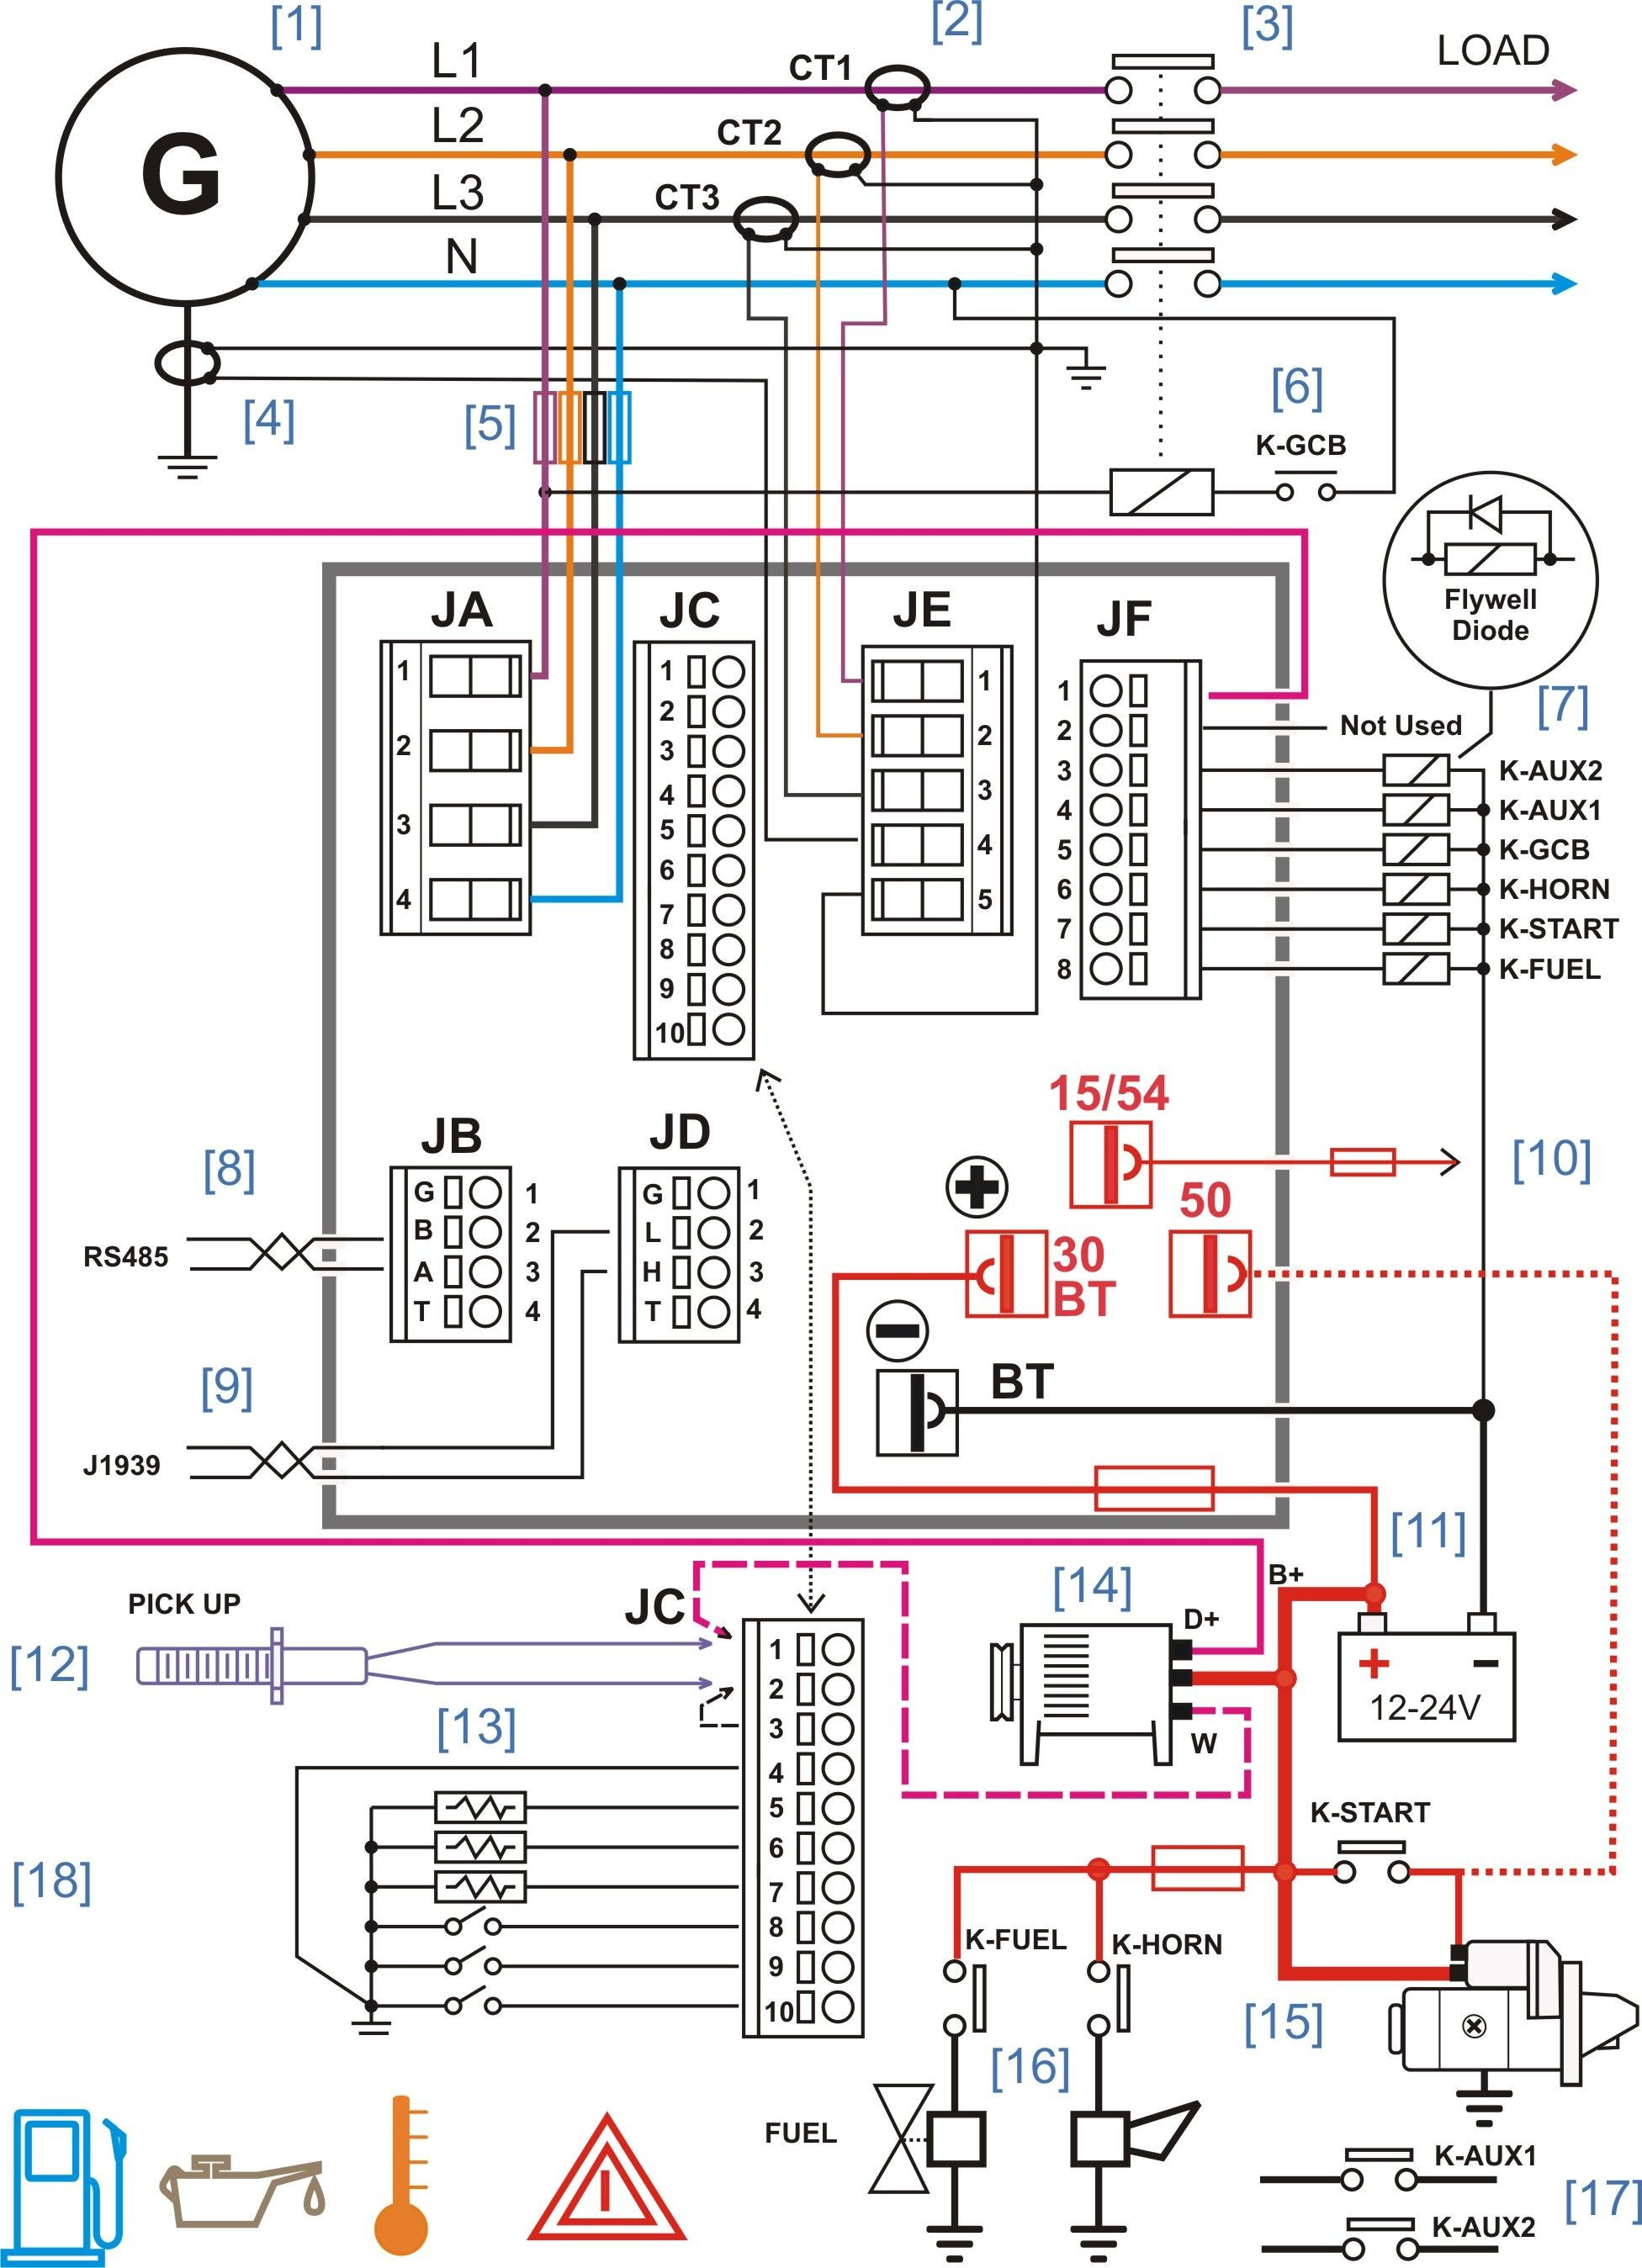 16ce electrical panel wiring diagram pdf | wiring library  wiring library